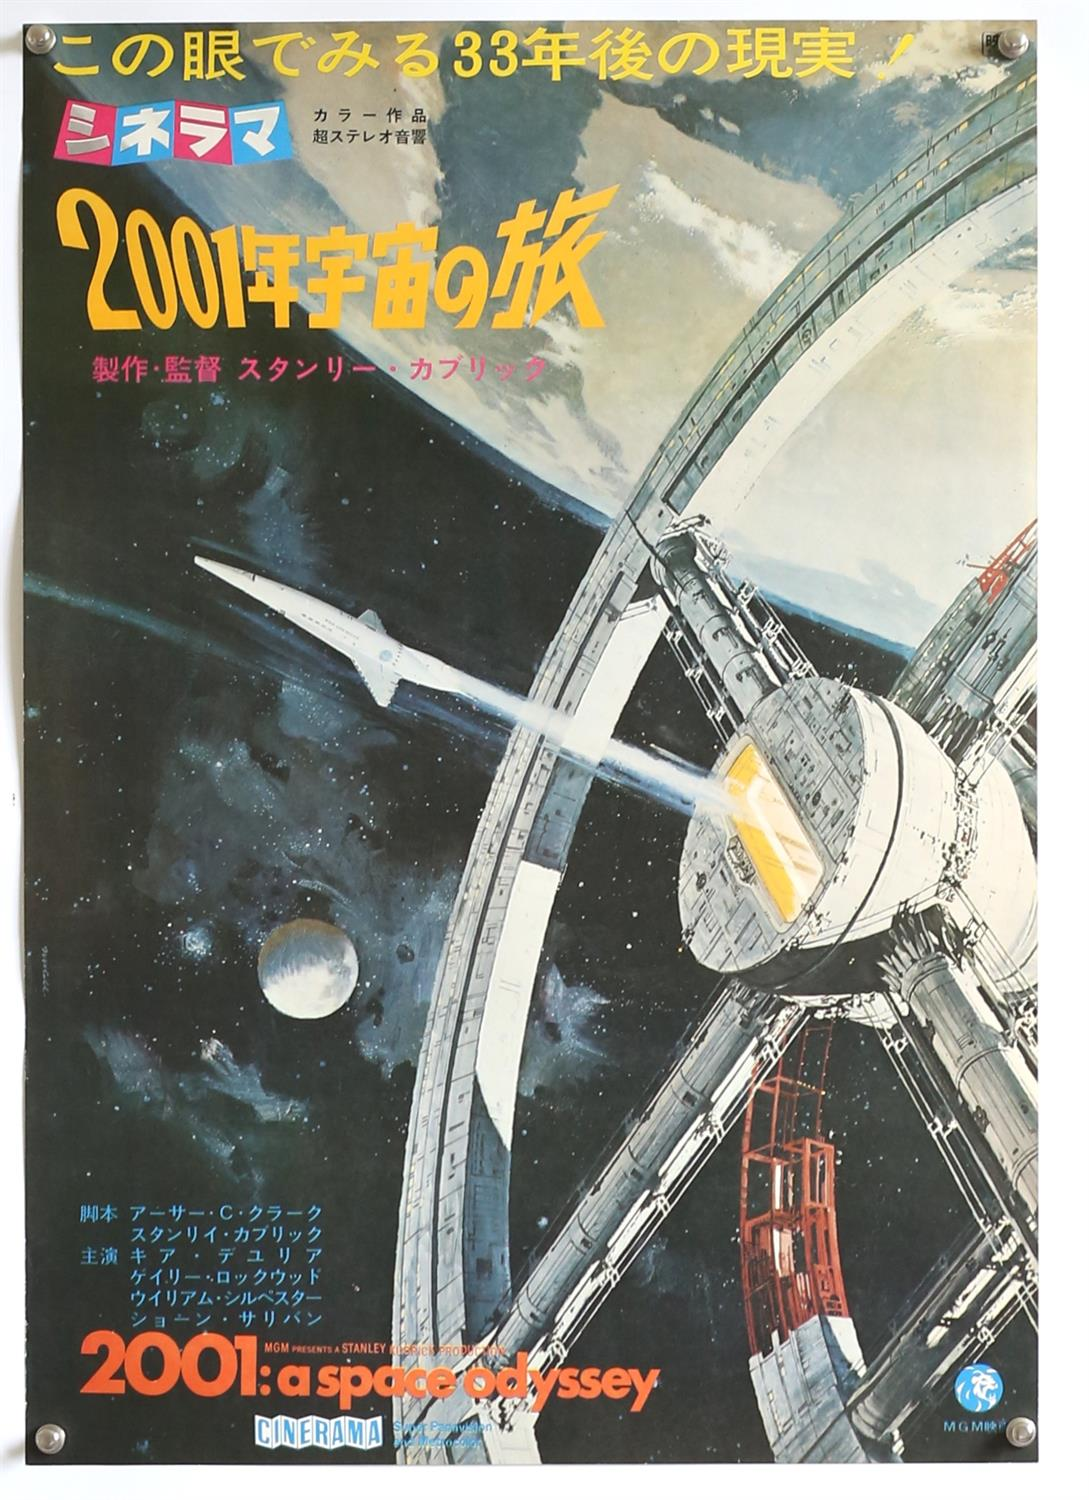 2001: A Space Odyssey (1968) Japanese B2 film poster, Cinerama style with artwork by Bob McCall,